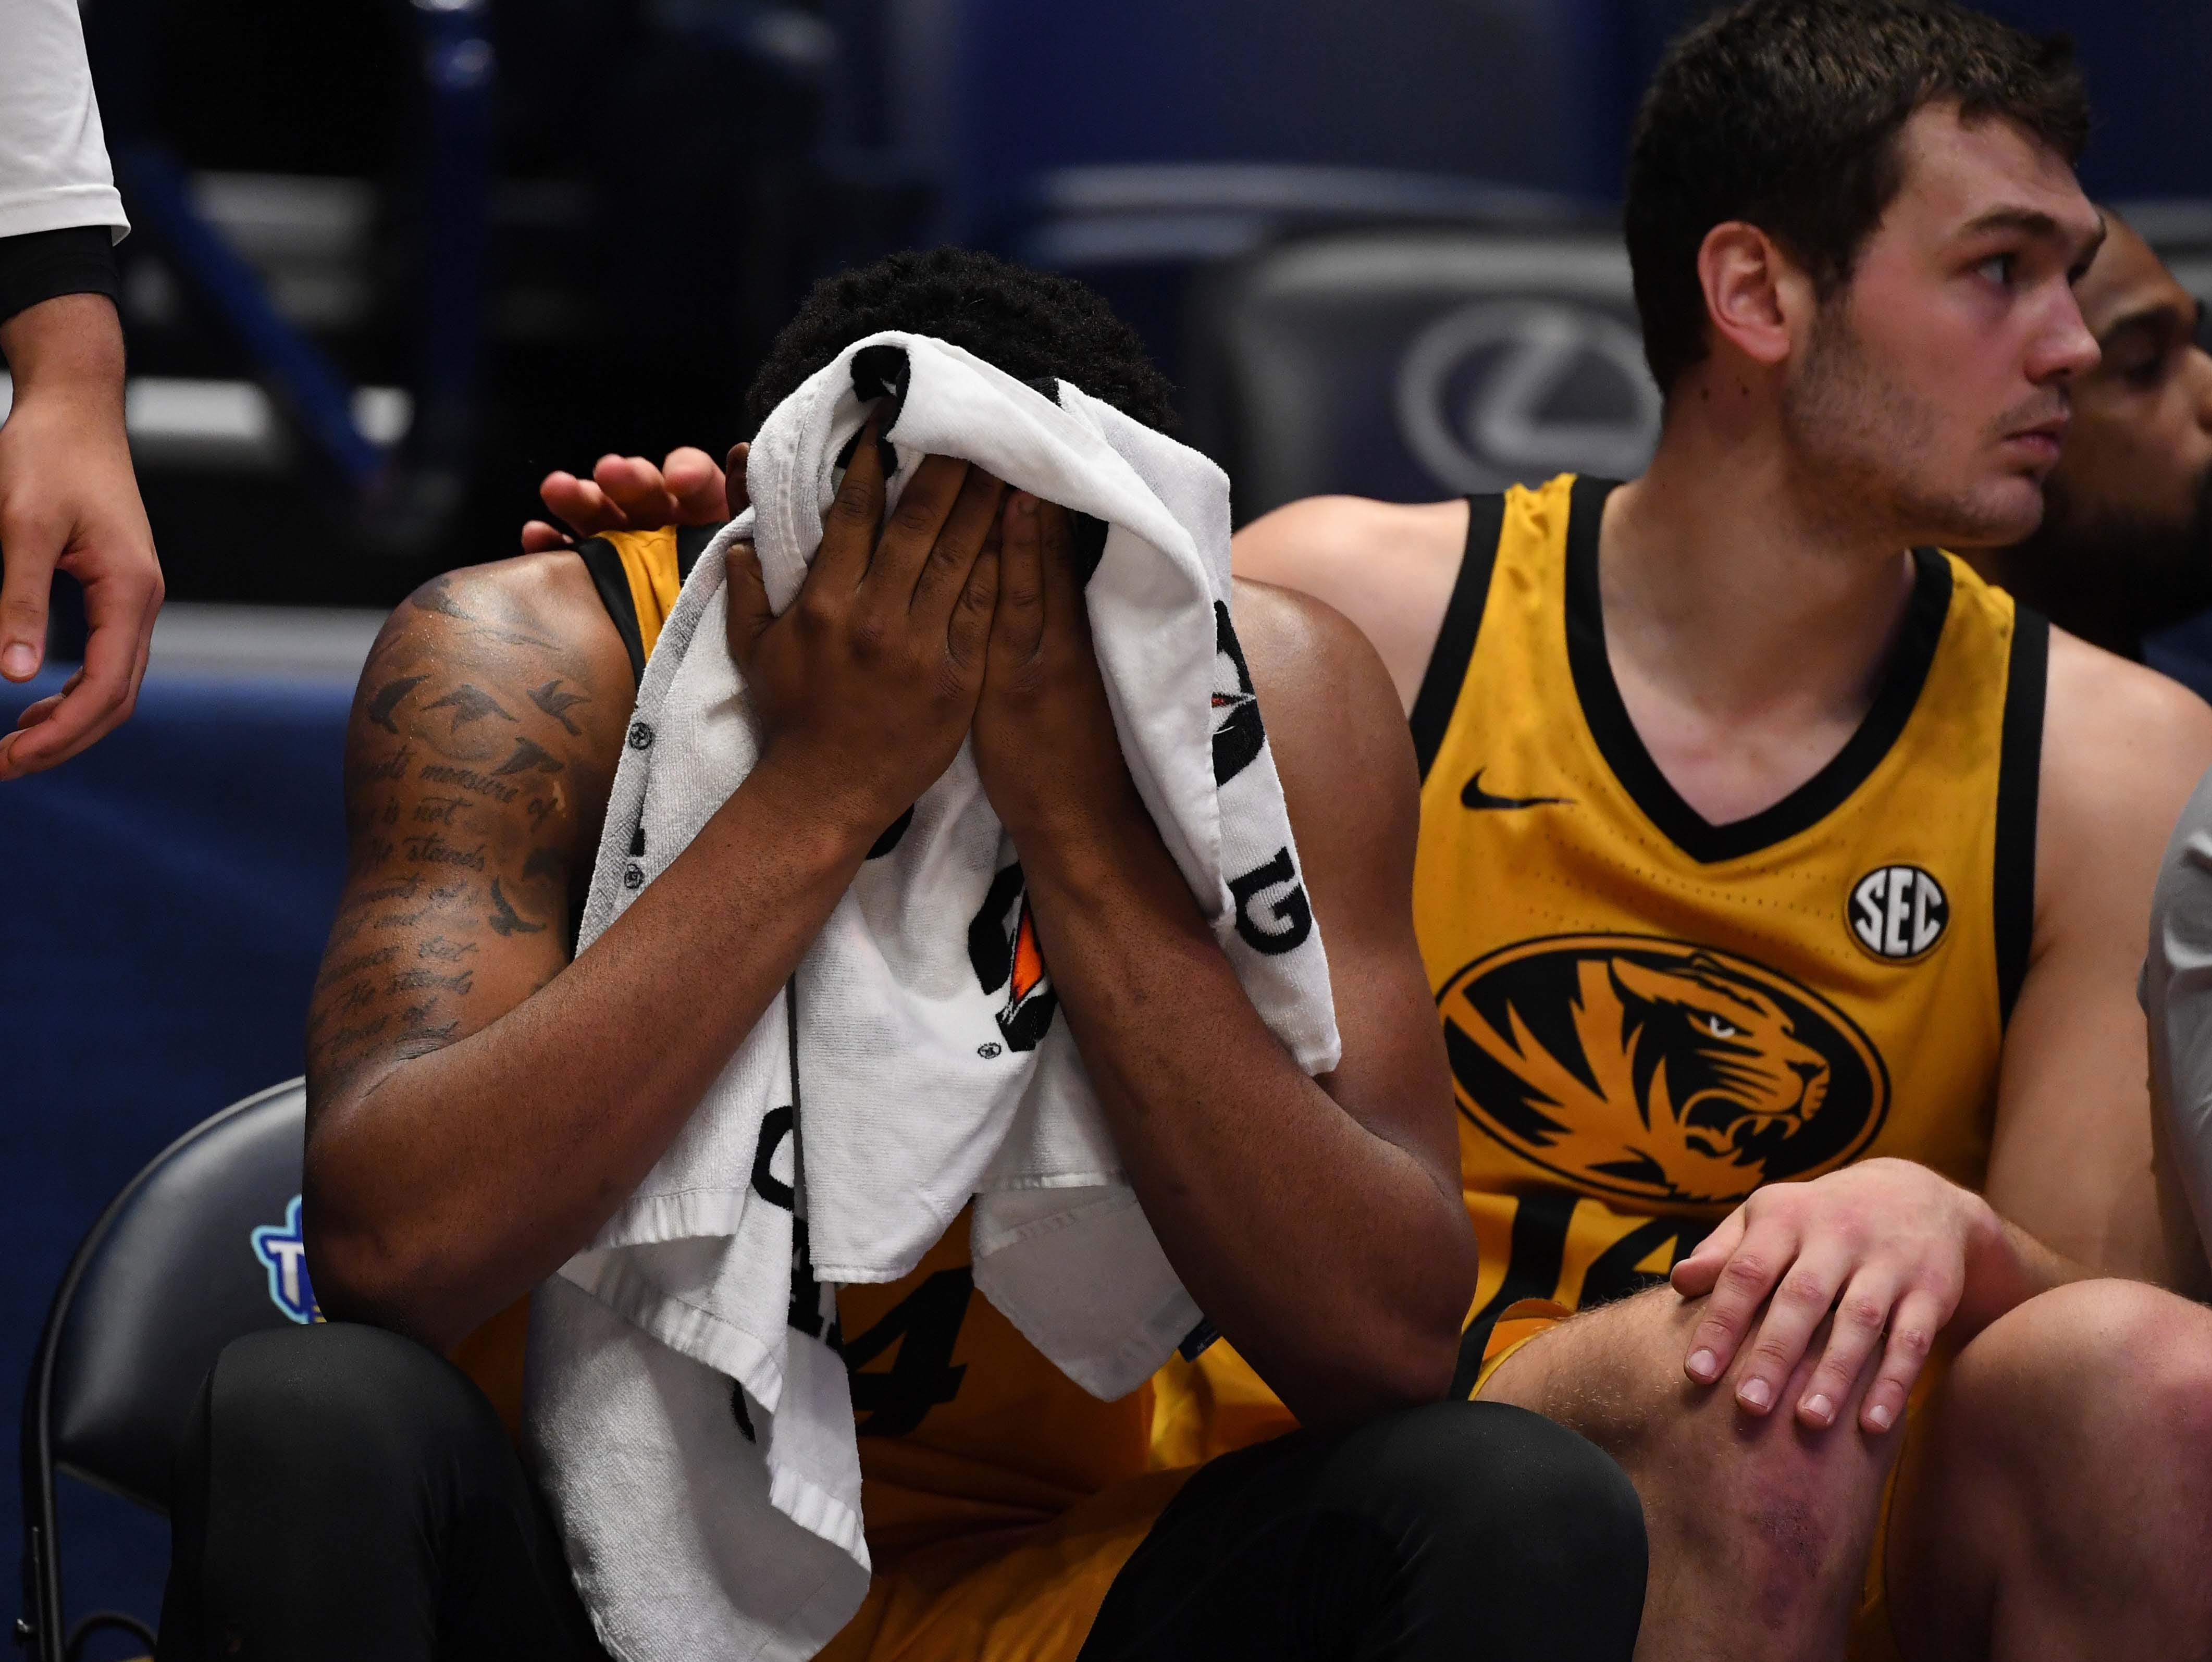 Mar 14, 2019; Nashville, TN, USA; Missouri Tigers forward Kevin Puryear (24) and forward Reed Nikko (14) on the bench late in the game of a loss against the Auburn Tigers in the SEC conference tournament at Bridgestone Arena. Mandatory Credit: Christopher Hanewinckel-USA TODAY Sports